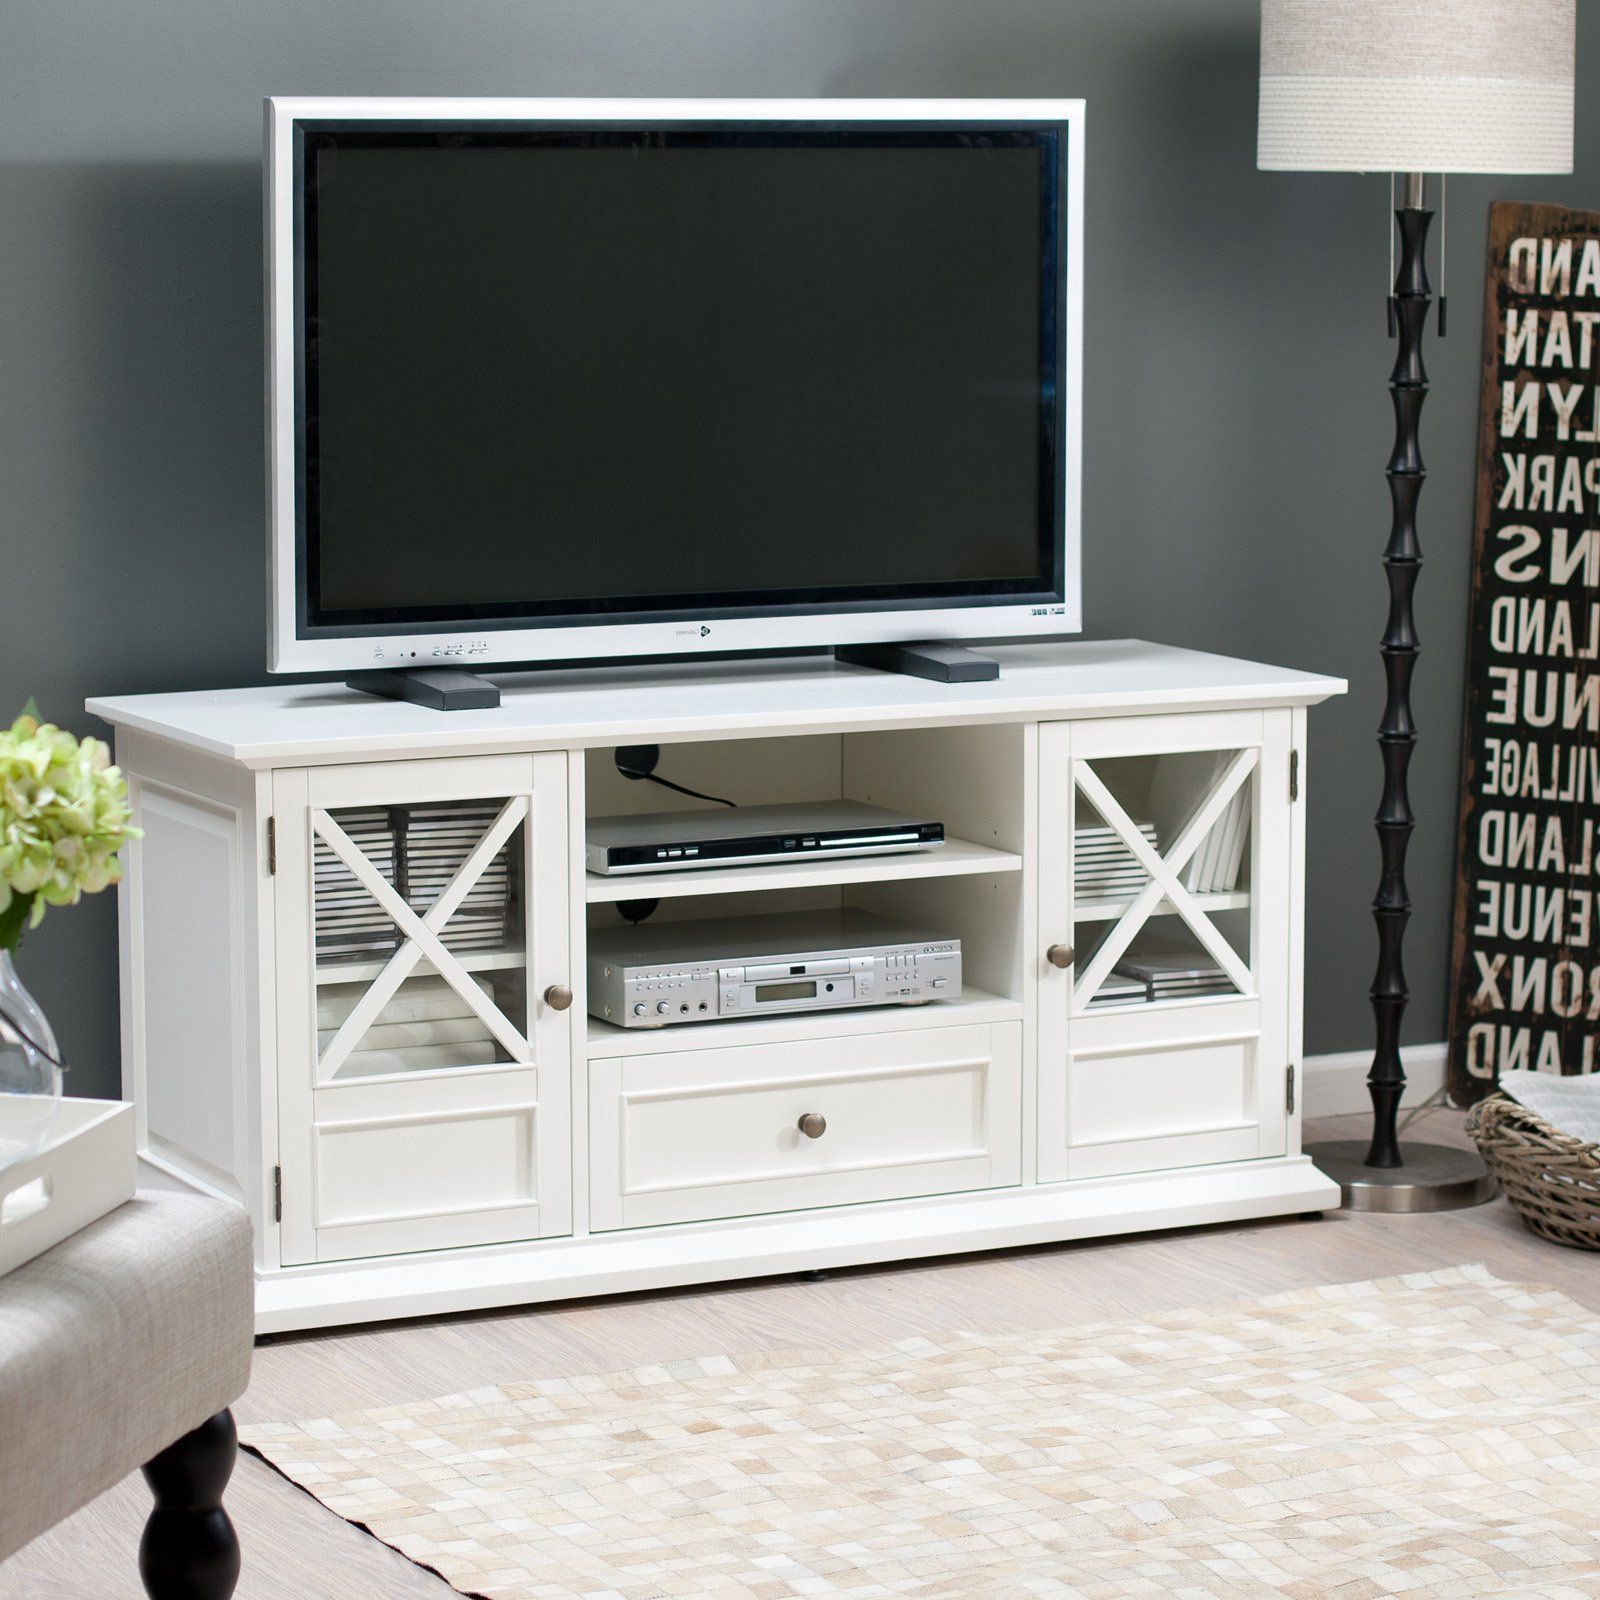 Tv Stands & Entertainment Centers | Hayneedle Inside Century White 60 Inch Tv Stands (View 7 of 20)